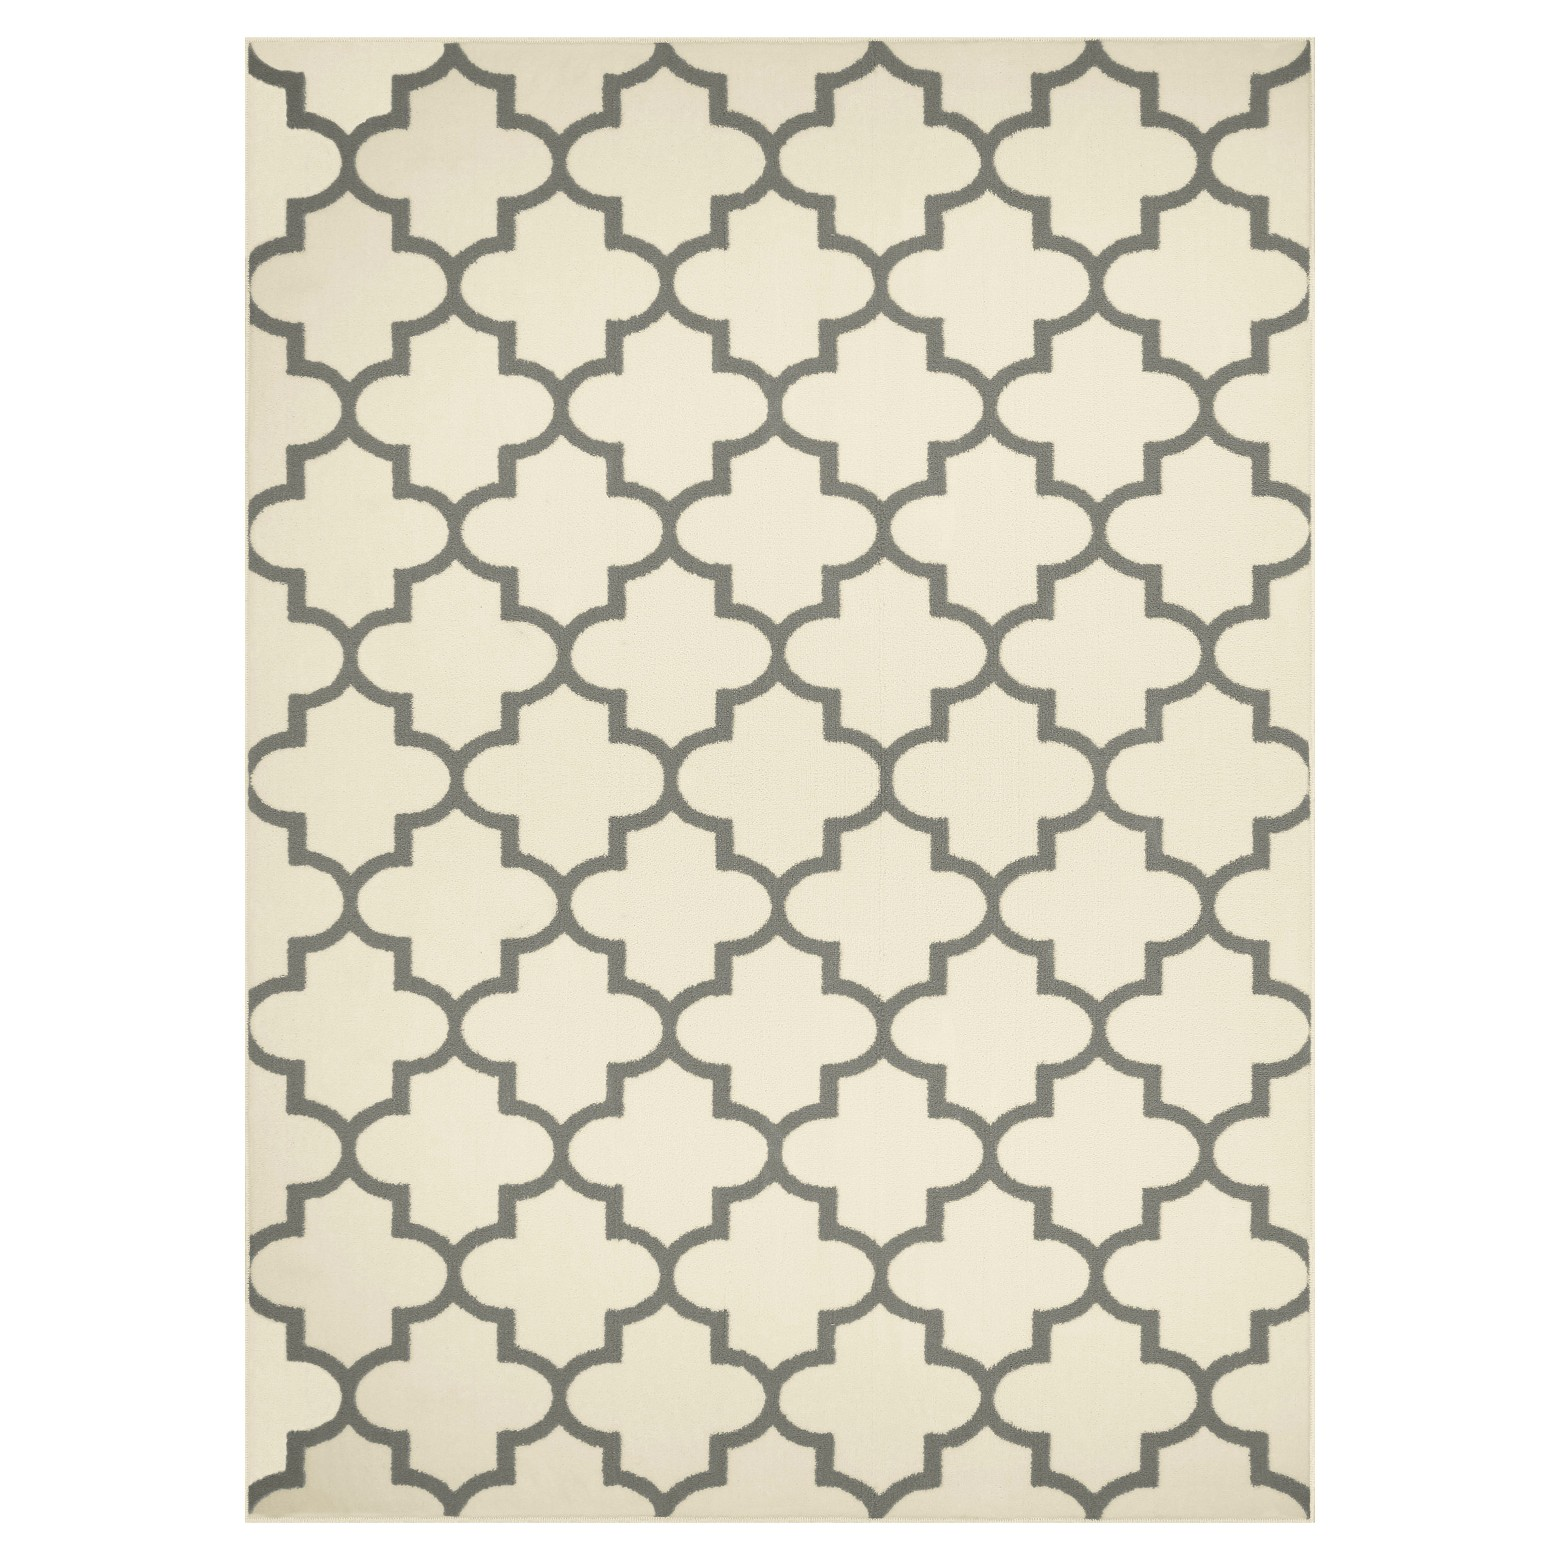 This is one of my favorite 8 x 10 area rugs from Target!